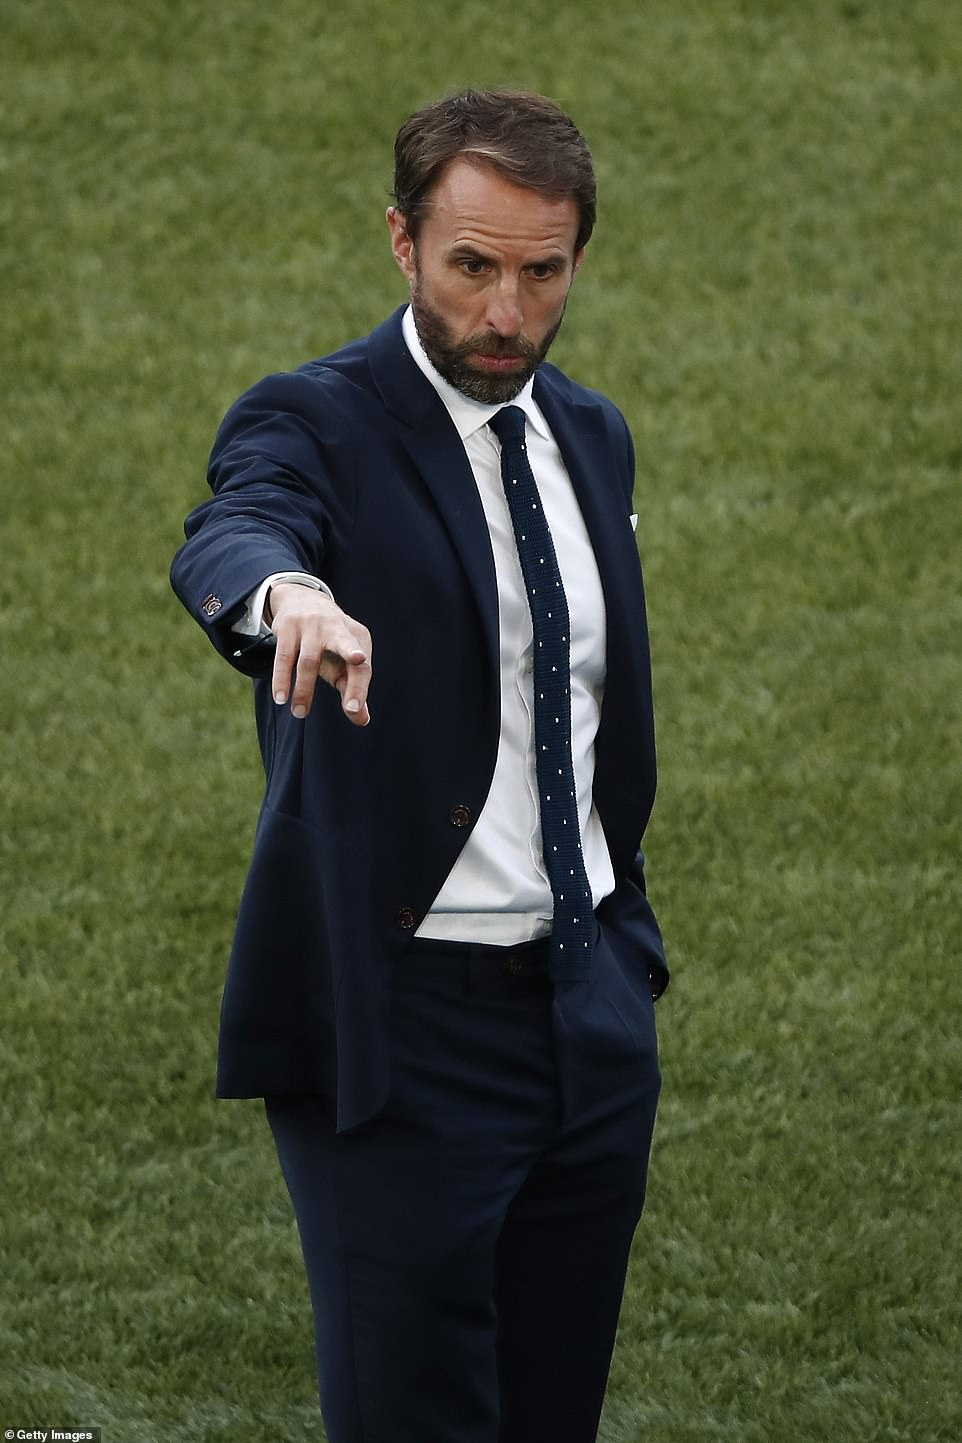 It's Coming Home: England manager Gareth Southgate looks on prior to the Euro 2020 Championship quarter final against Ukraine